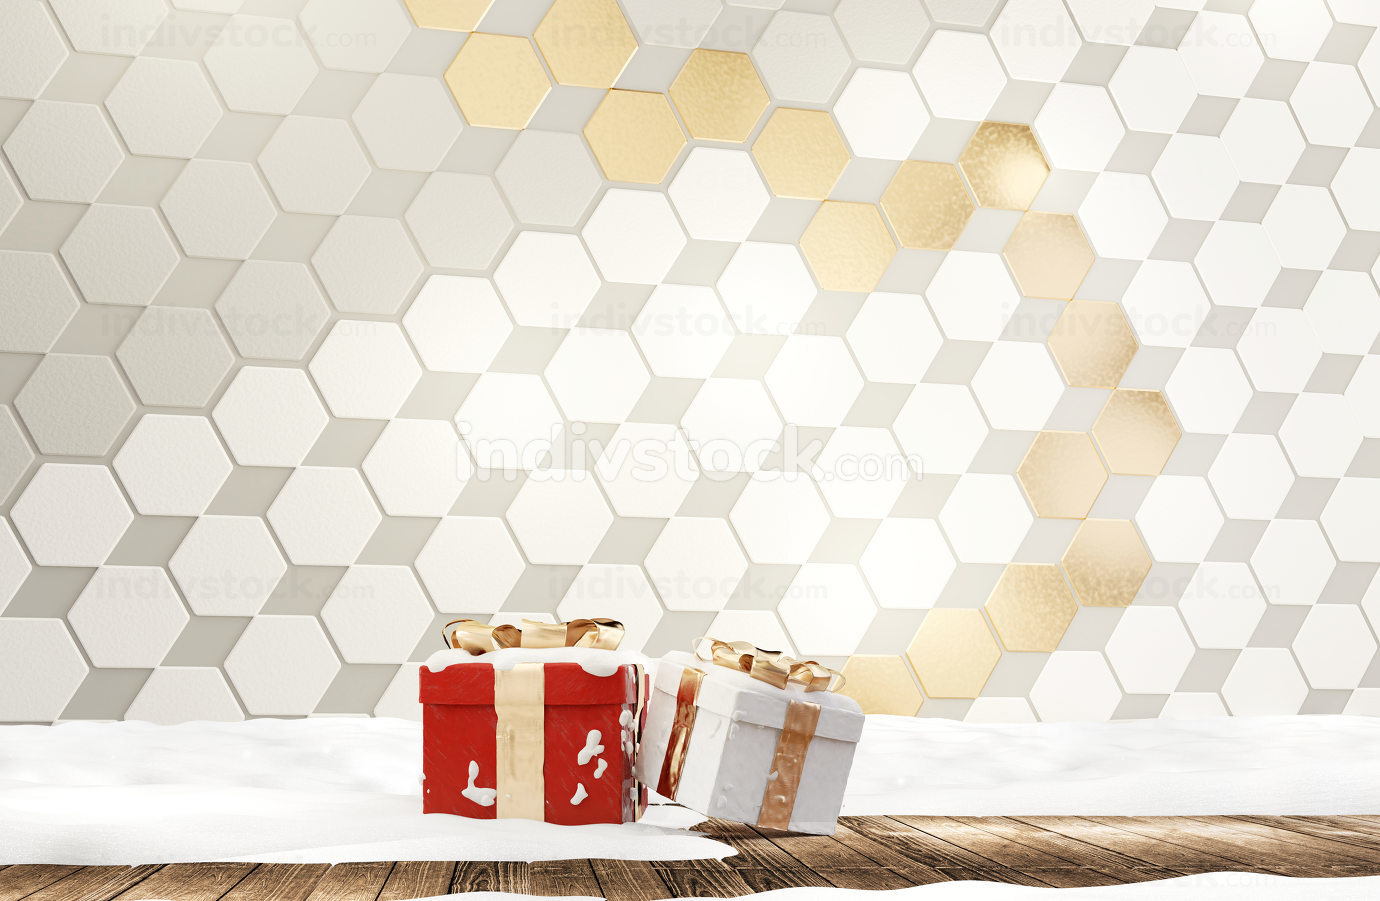 golden white and light gray hexagonal grid background with christmas gifts and snow 3d-illustration